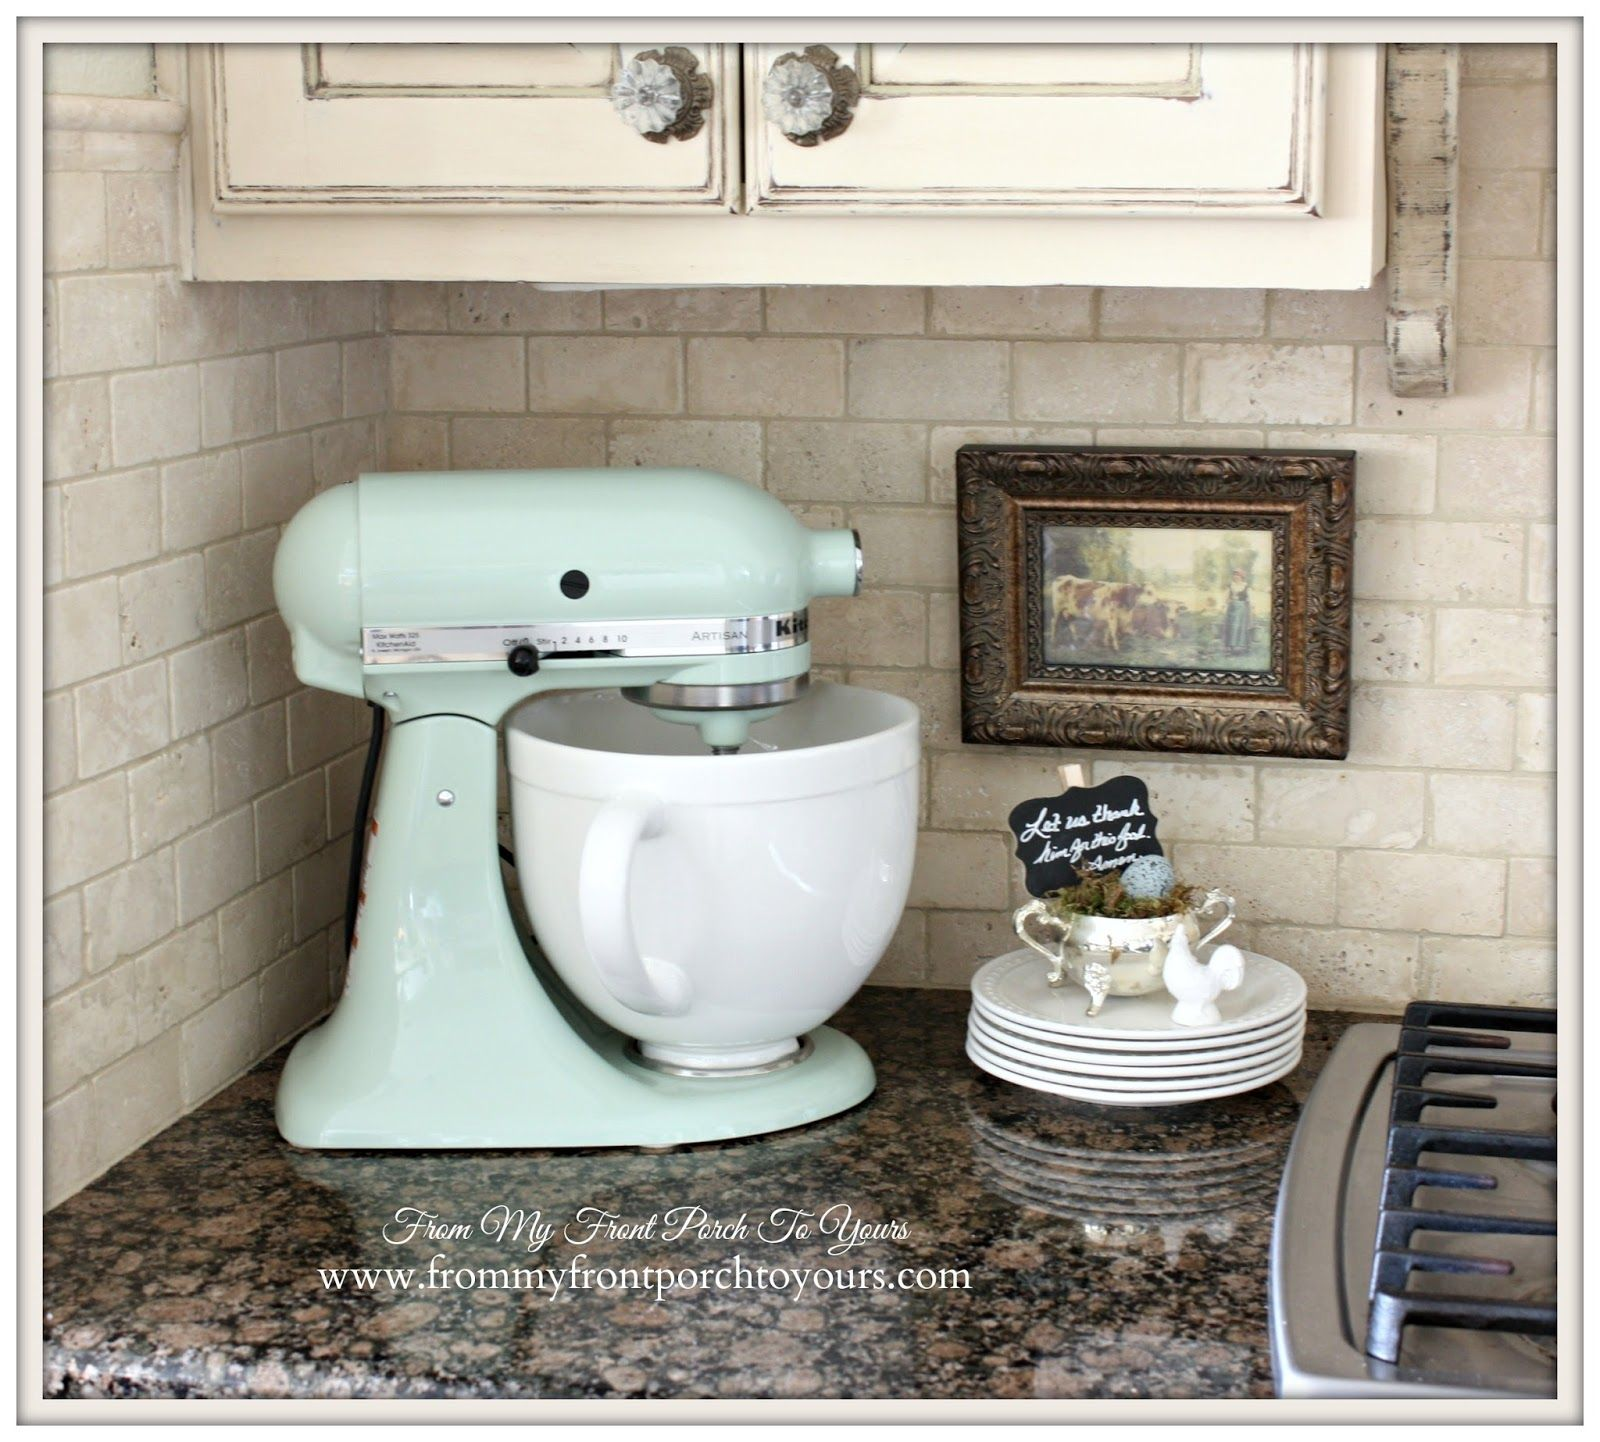 Ordinaire Pistachio KitchenAid Mixer French Farmhouse Kitchen  From My Front Porch To  Yours